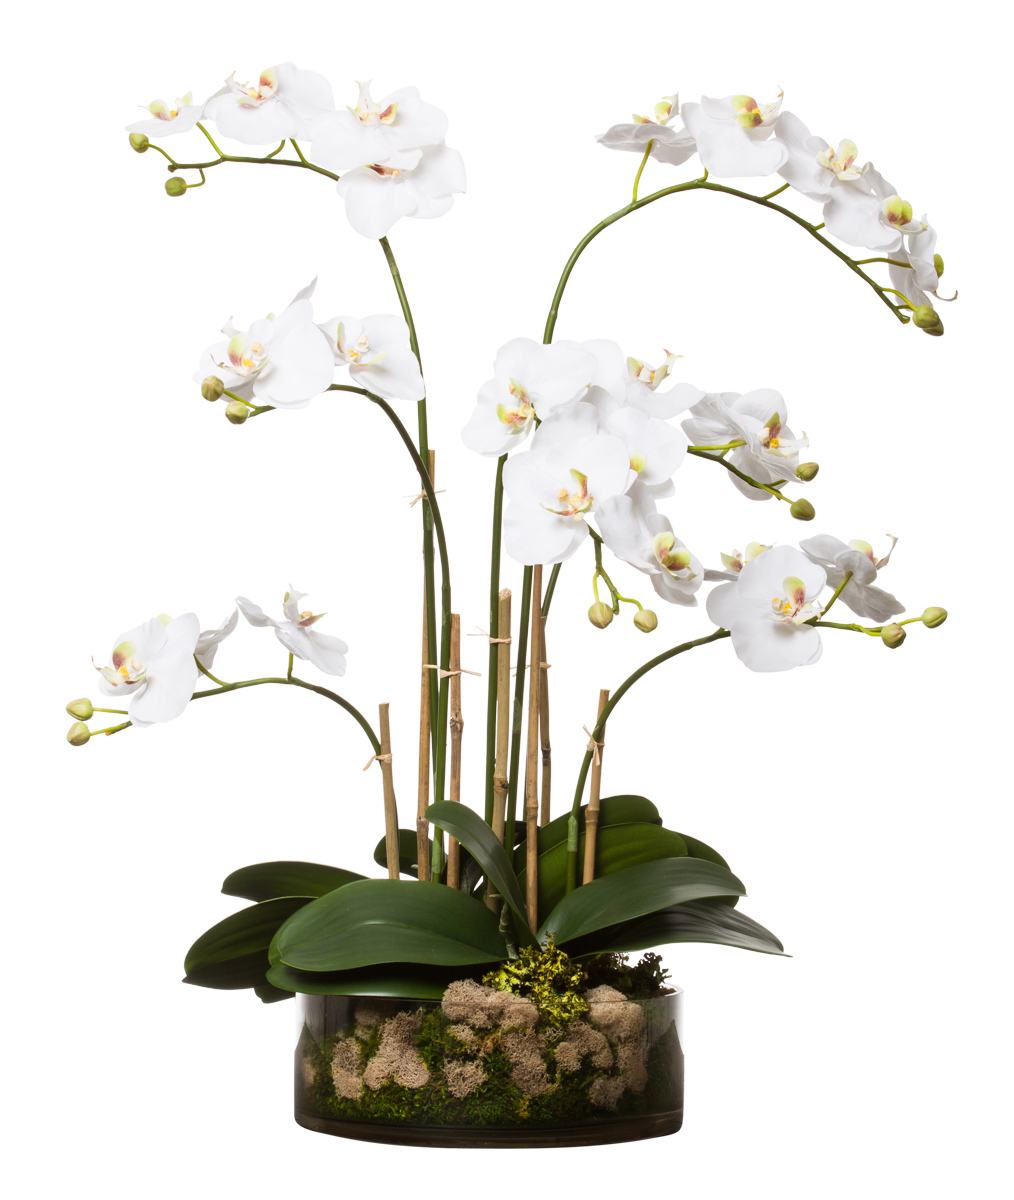 WHITE PHAL IN GLASS BOWL